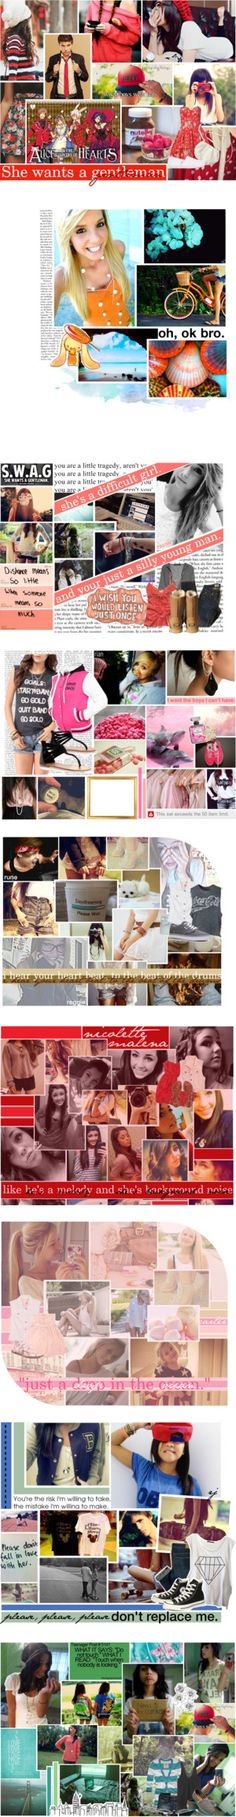 """""""girl characters [ignore]"""" by pastelstars-x ❤ liked on Polyvore"""